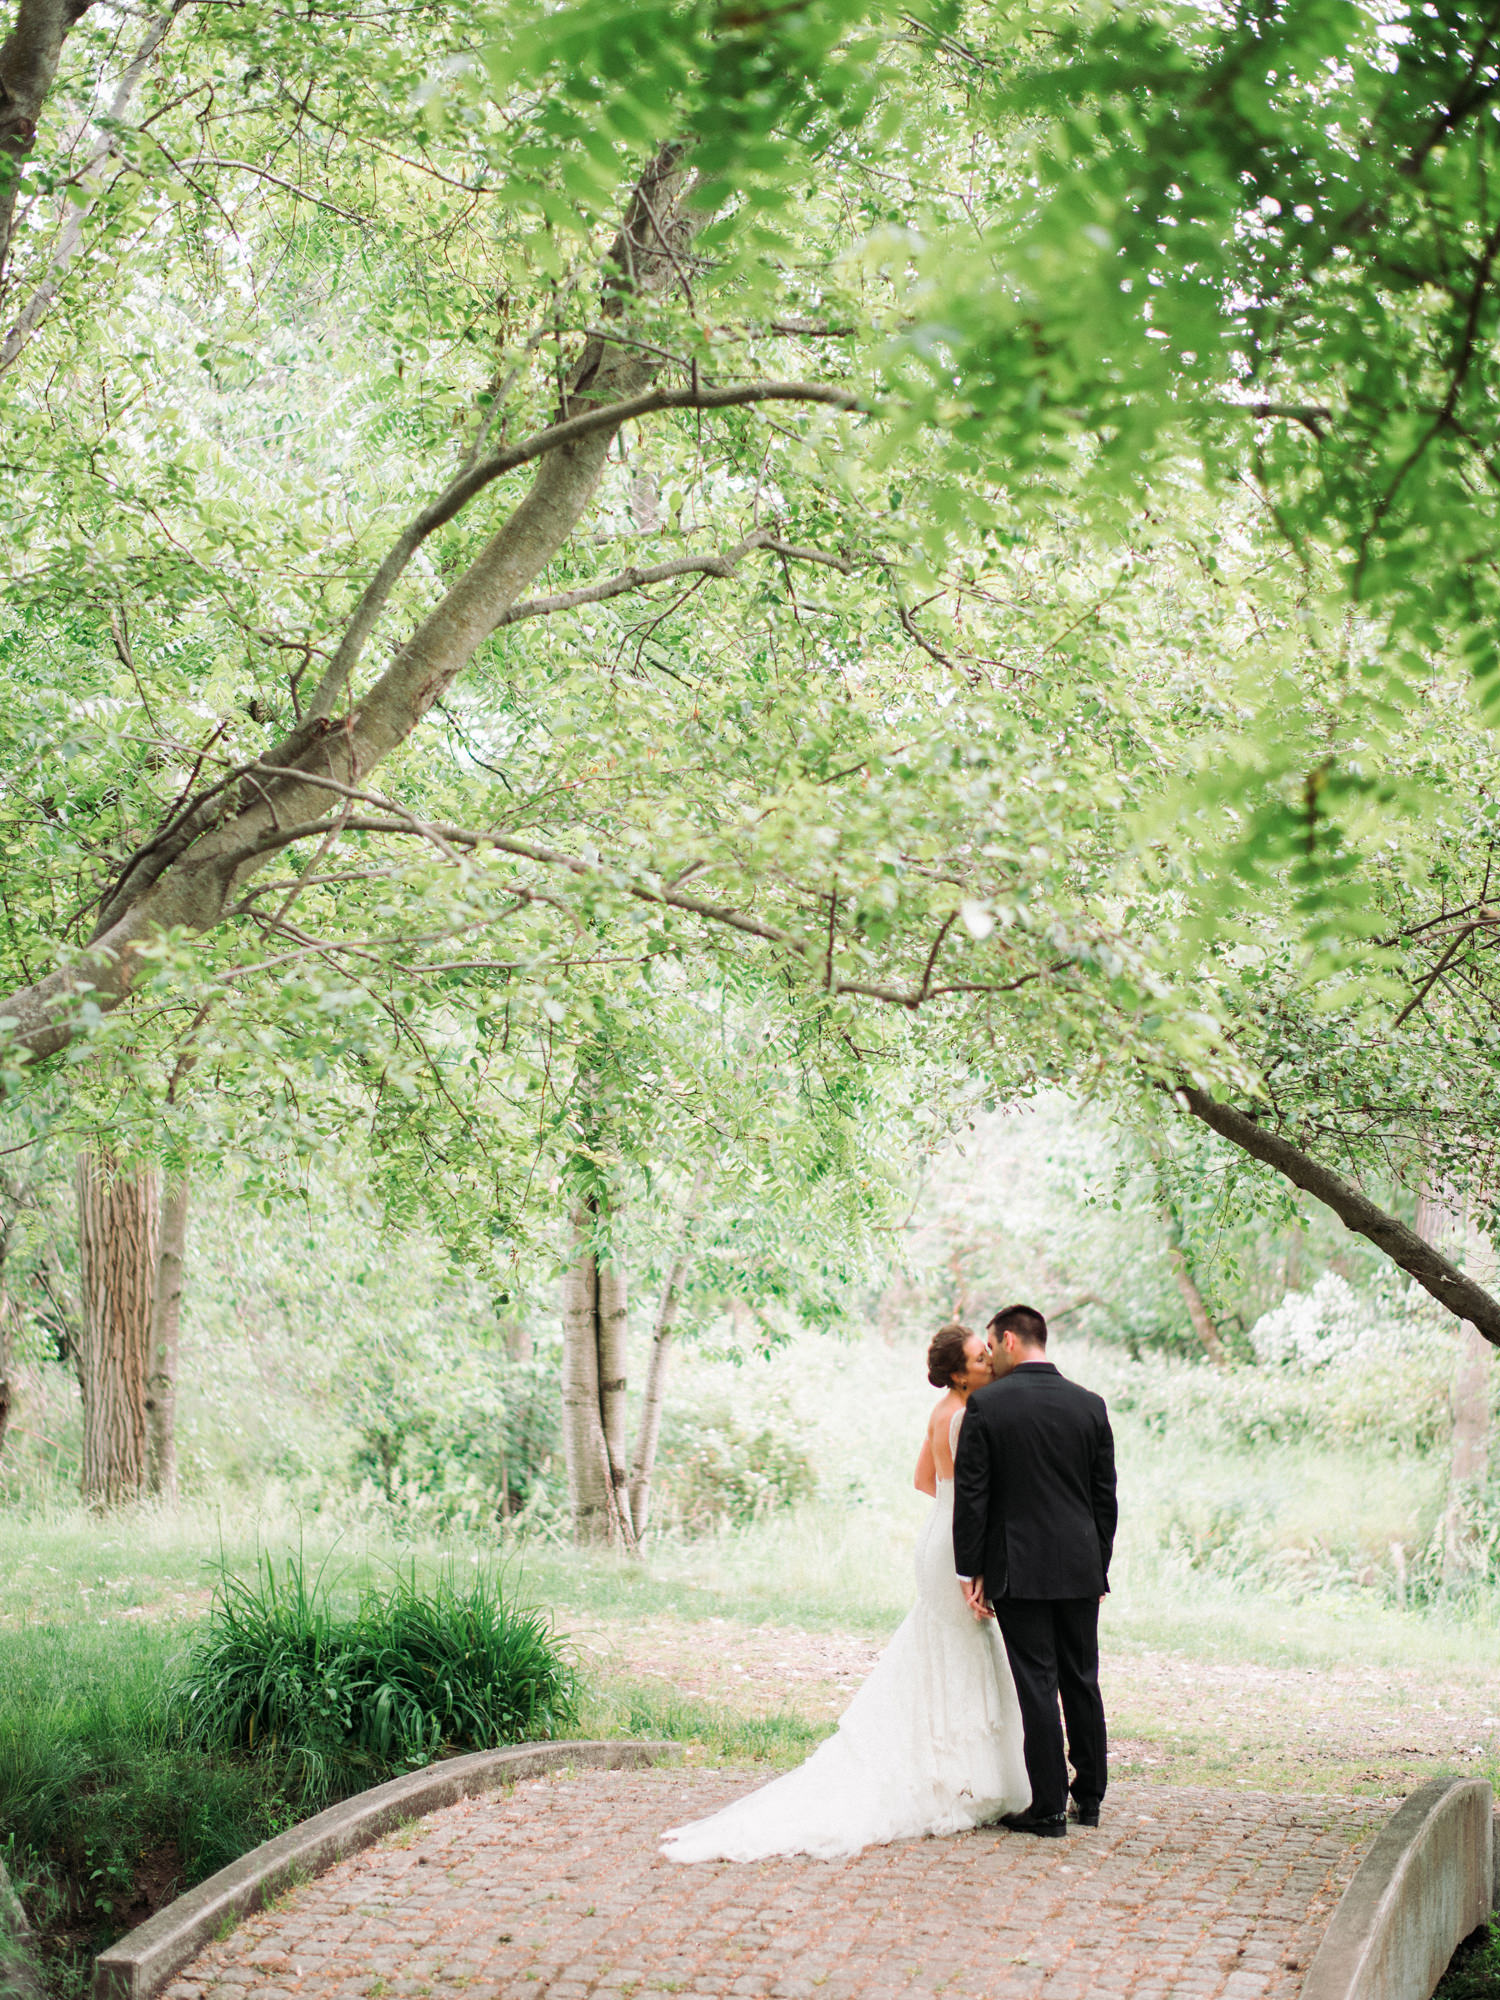 ryan-flynn-best-wedding-photography-2015-seattle-film-photographer-0088.JPG